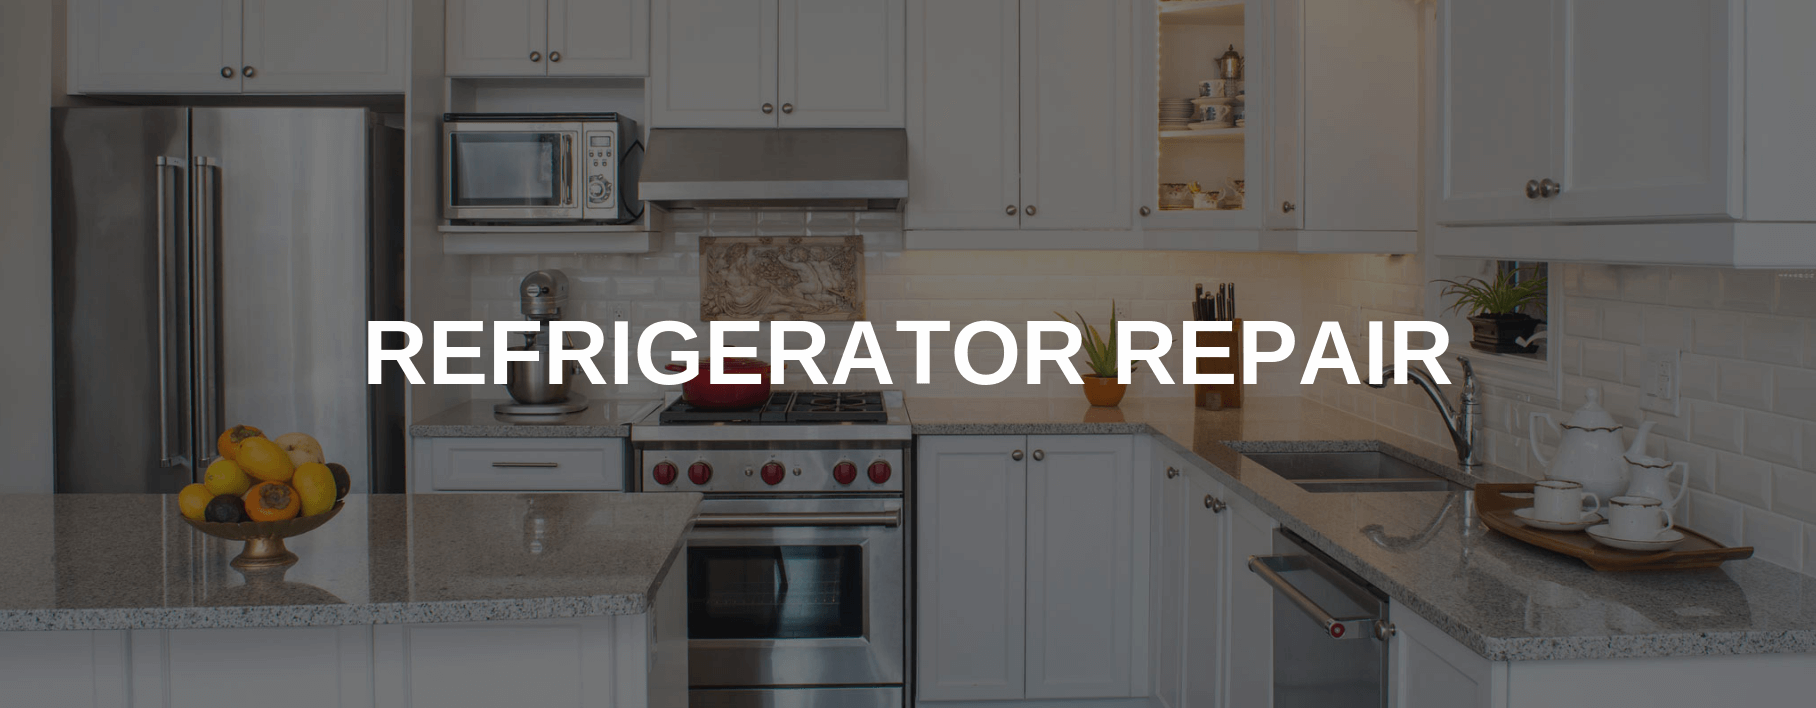 refrigerator repair east orange